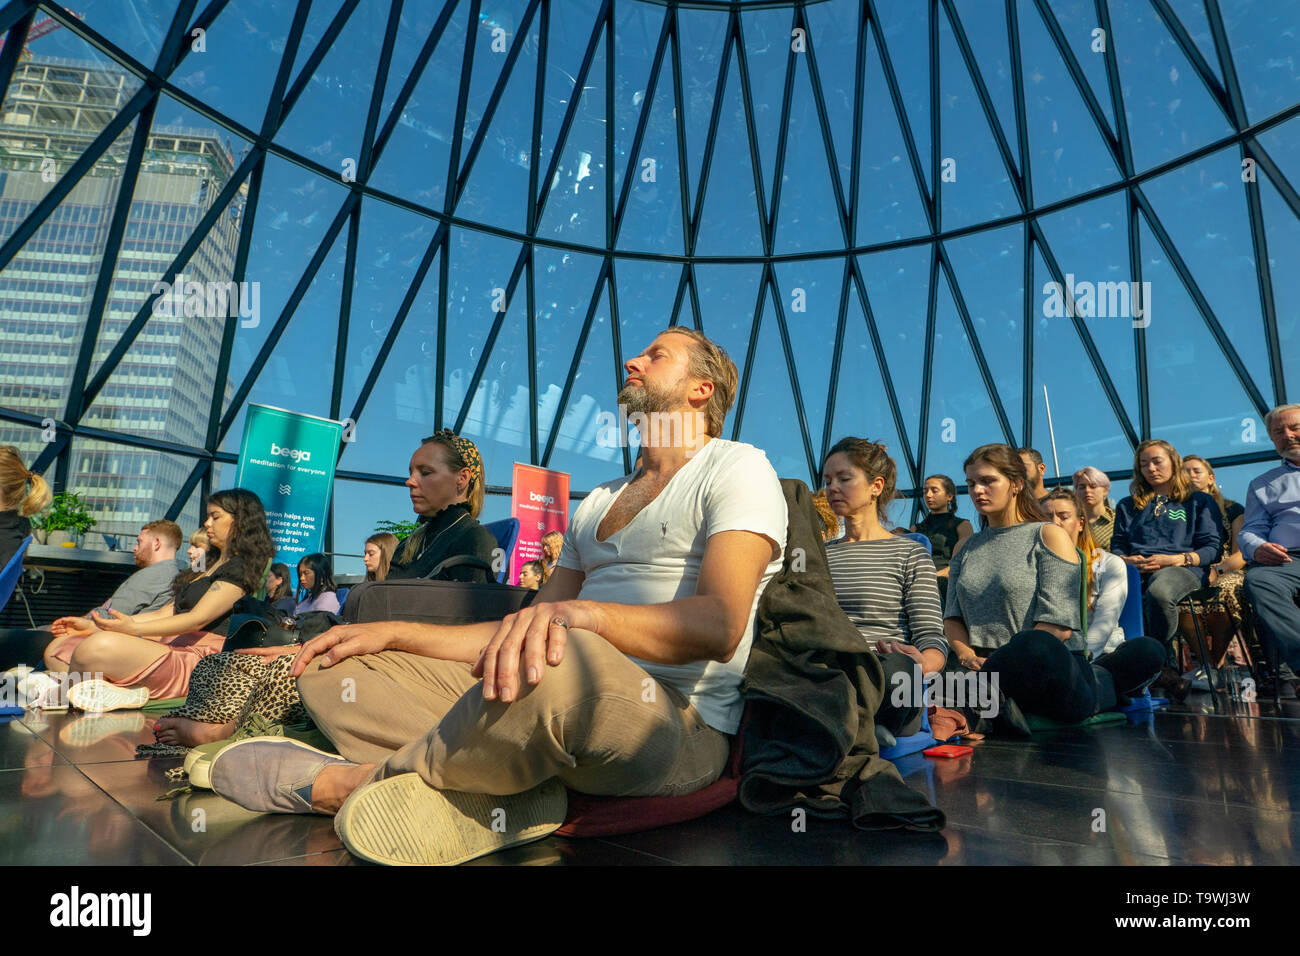 London, UK. 21st May, 2019. The Beeja Meditation group hosting a guided meditation session in Searcys bar at the top of the Gerkin office block in London to mark world meditation day. Photo date: Tuesday, May 21, 2019. Photo: Roger Garfield/Alamy Credit: Roger Garfield/Alamy Live News - Stock Image